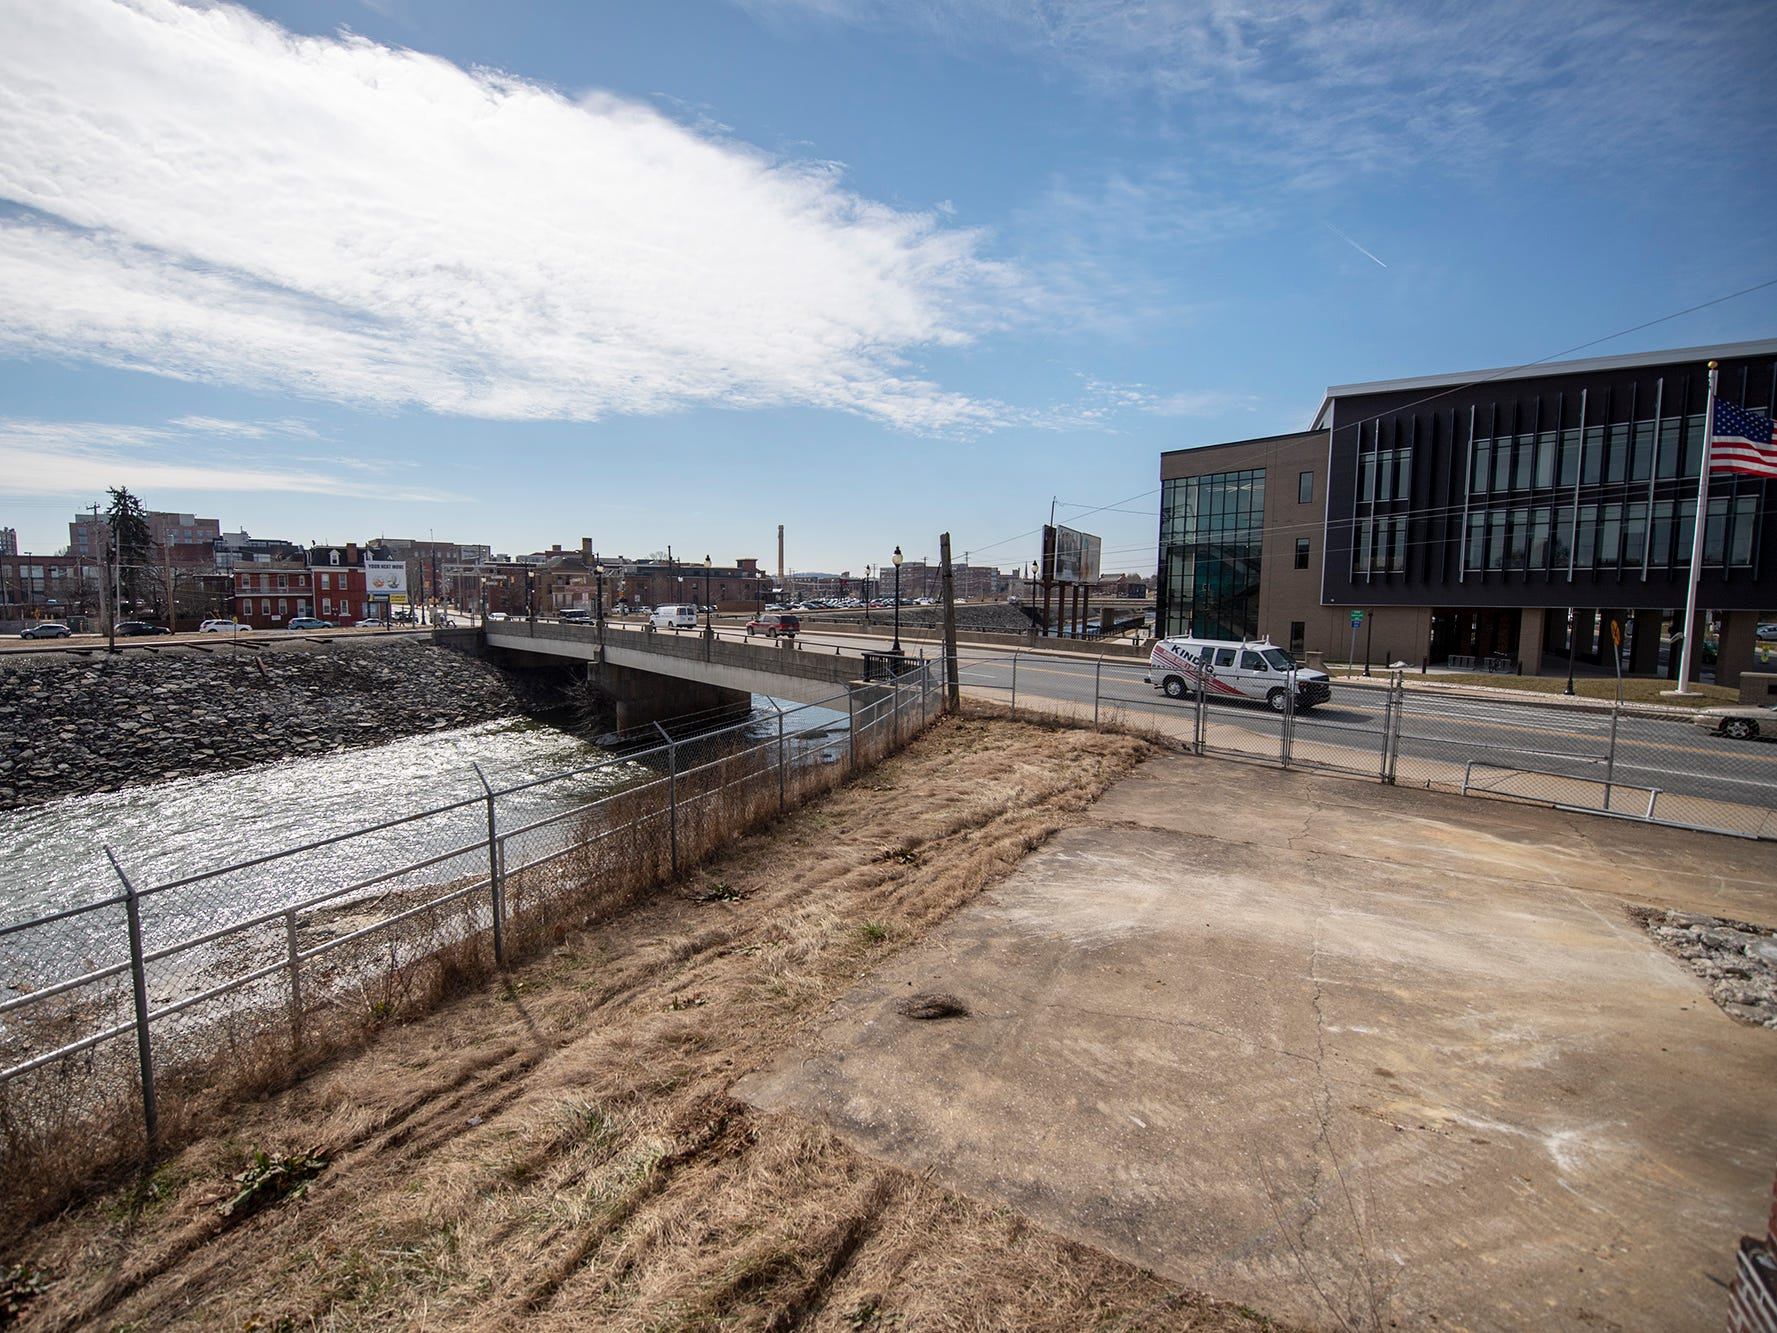 Looking from the armory building across the Codorus Creek. York Academy is at right. The York Armory, a brick fortress built in 1913 once used by the Pa. National Guard, will soon be transformed into Keystone Kidspace, an educational experience for families. It's expected to open in 2020.